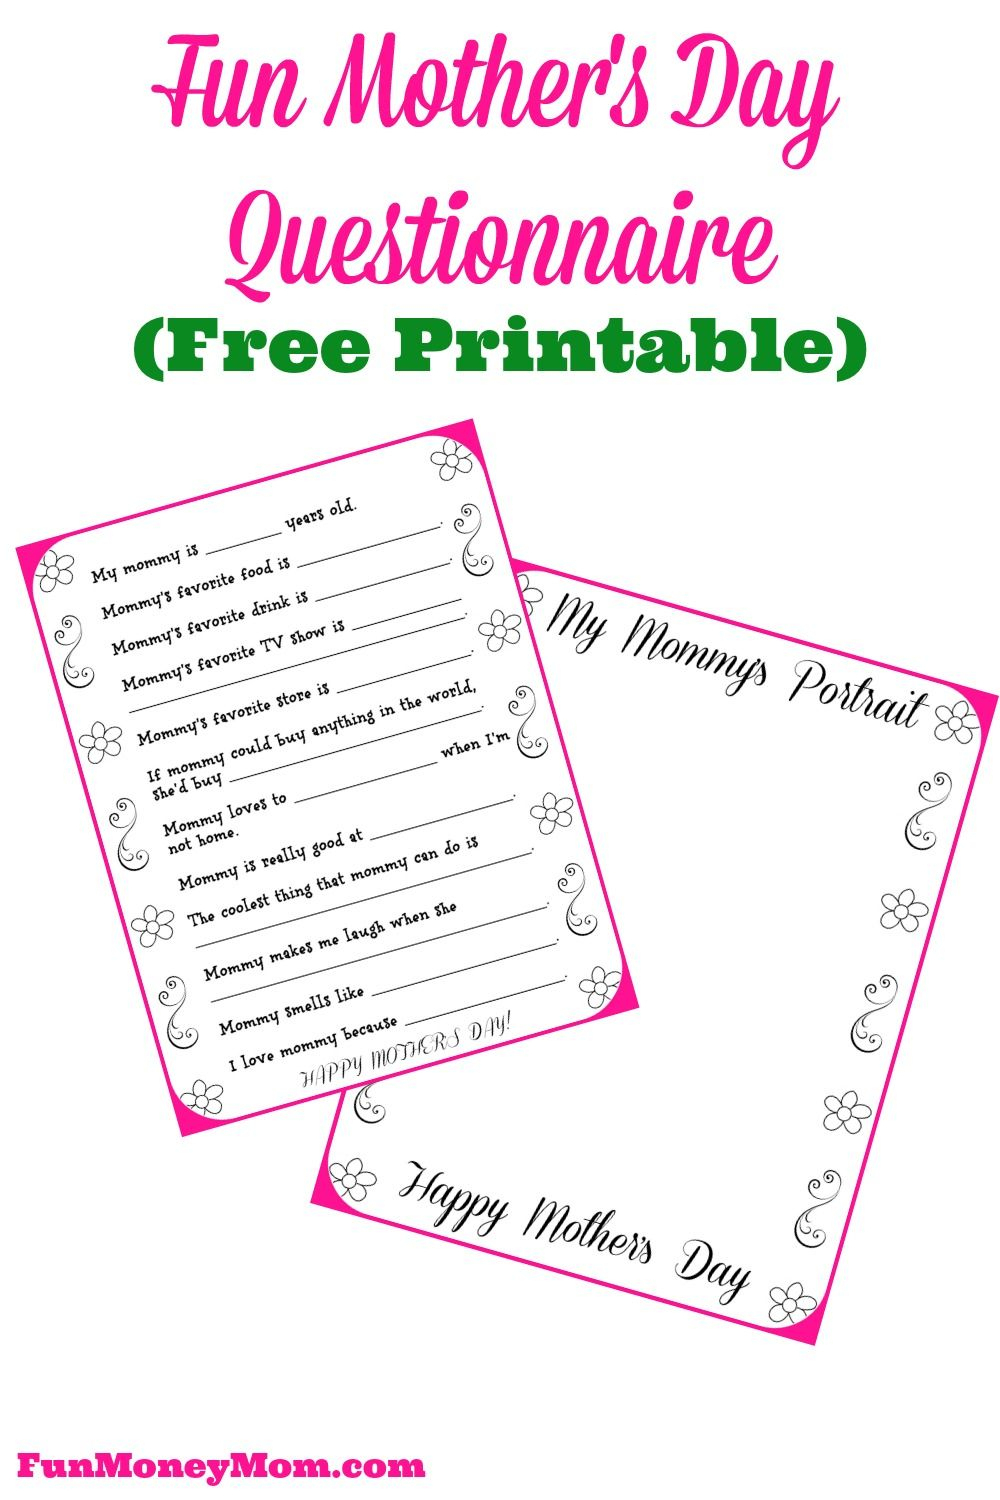 Free Printable Mother's Day Questionnaire & Portrait Page | Best - Free Printable Mother's Day Questionnaire